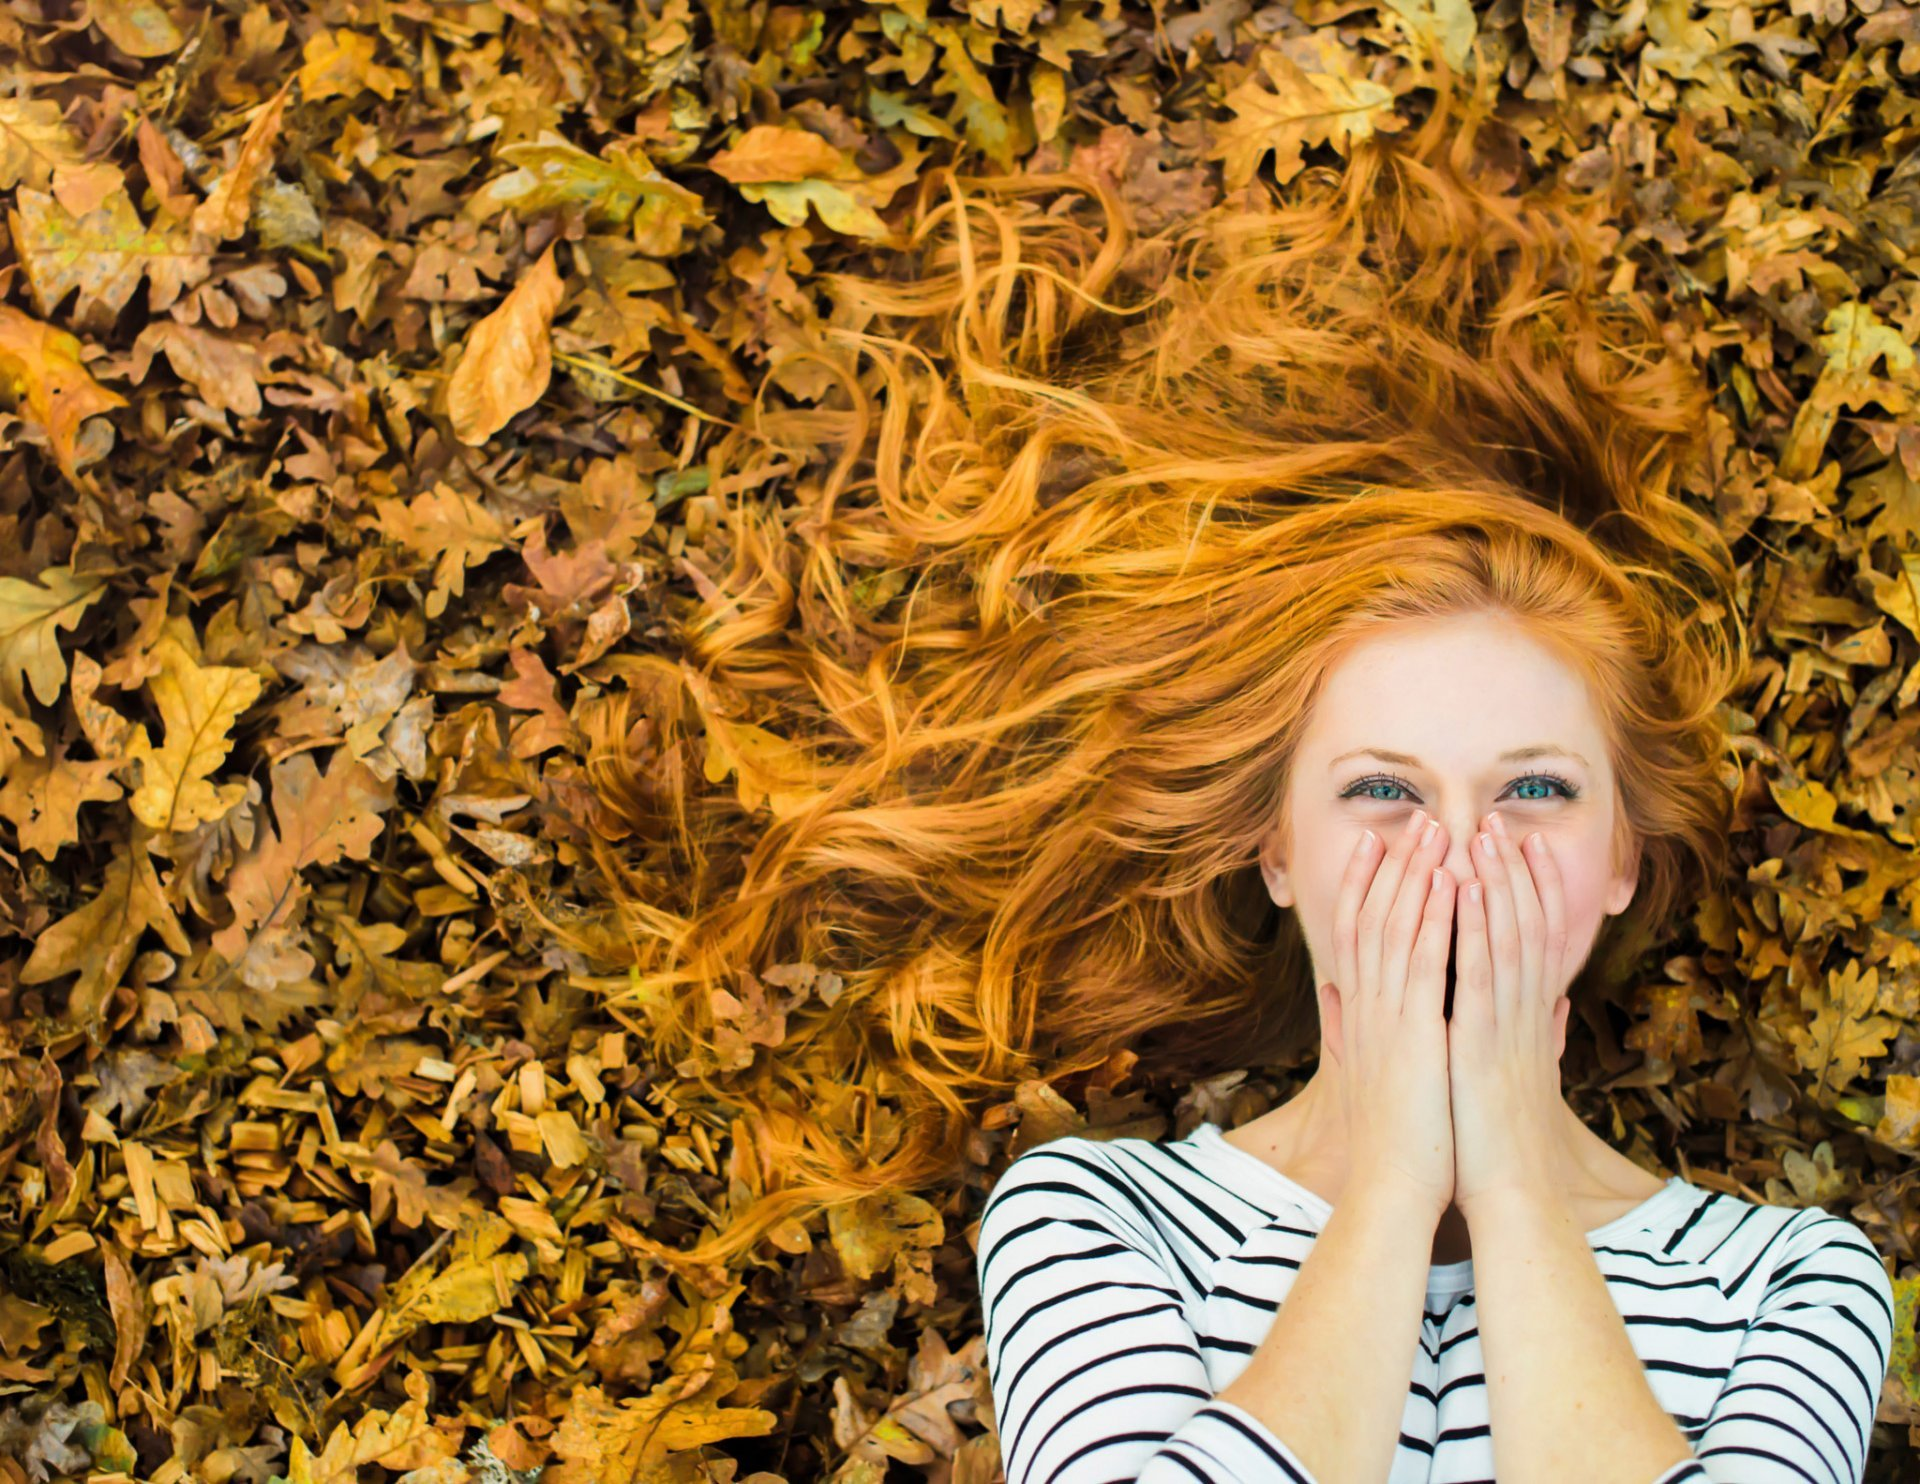 girl-red-hair-laughter-autumn-leaves-happiness